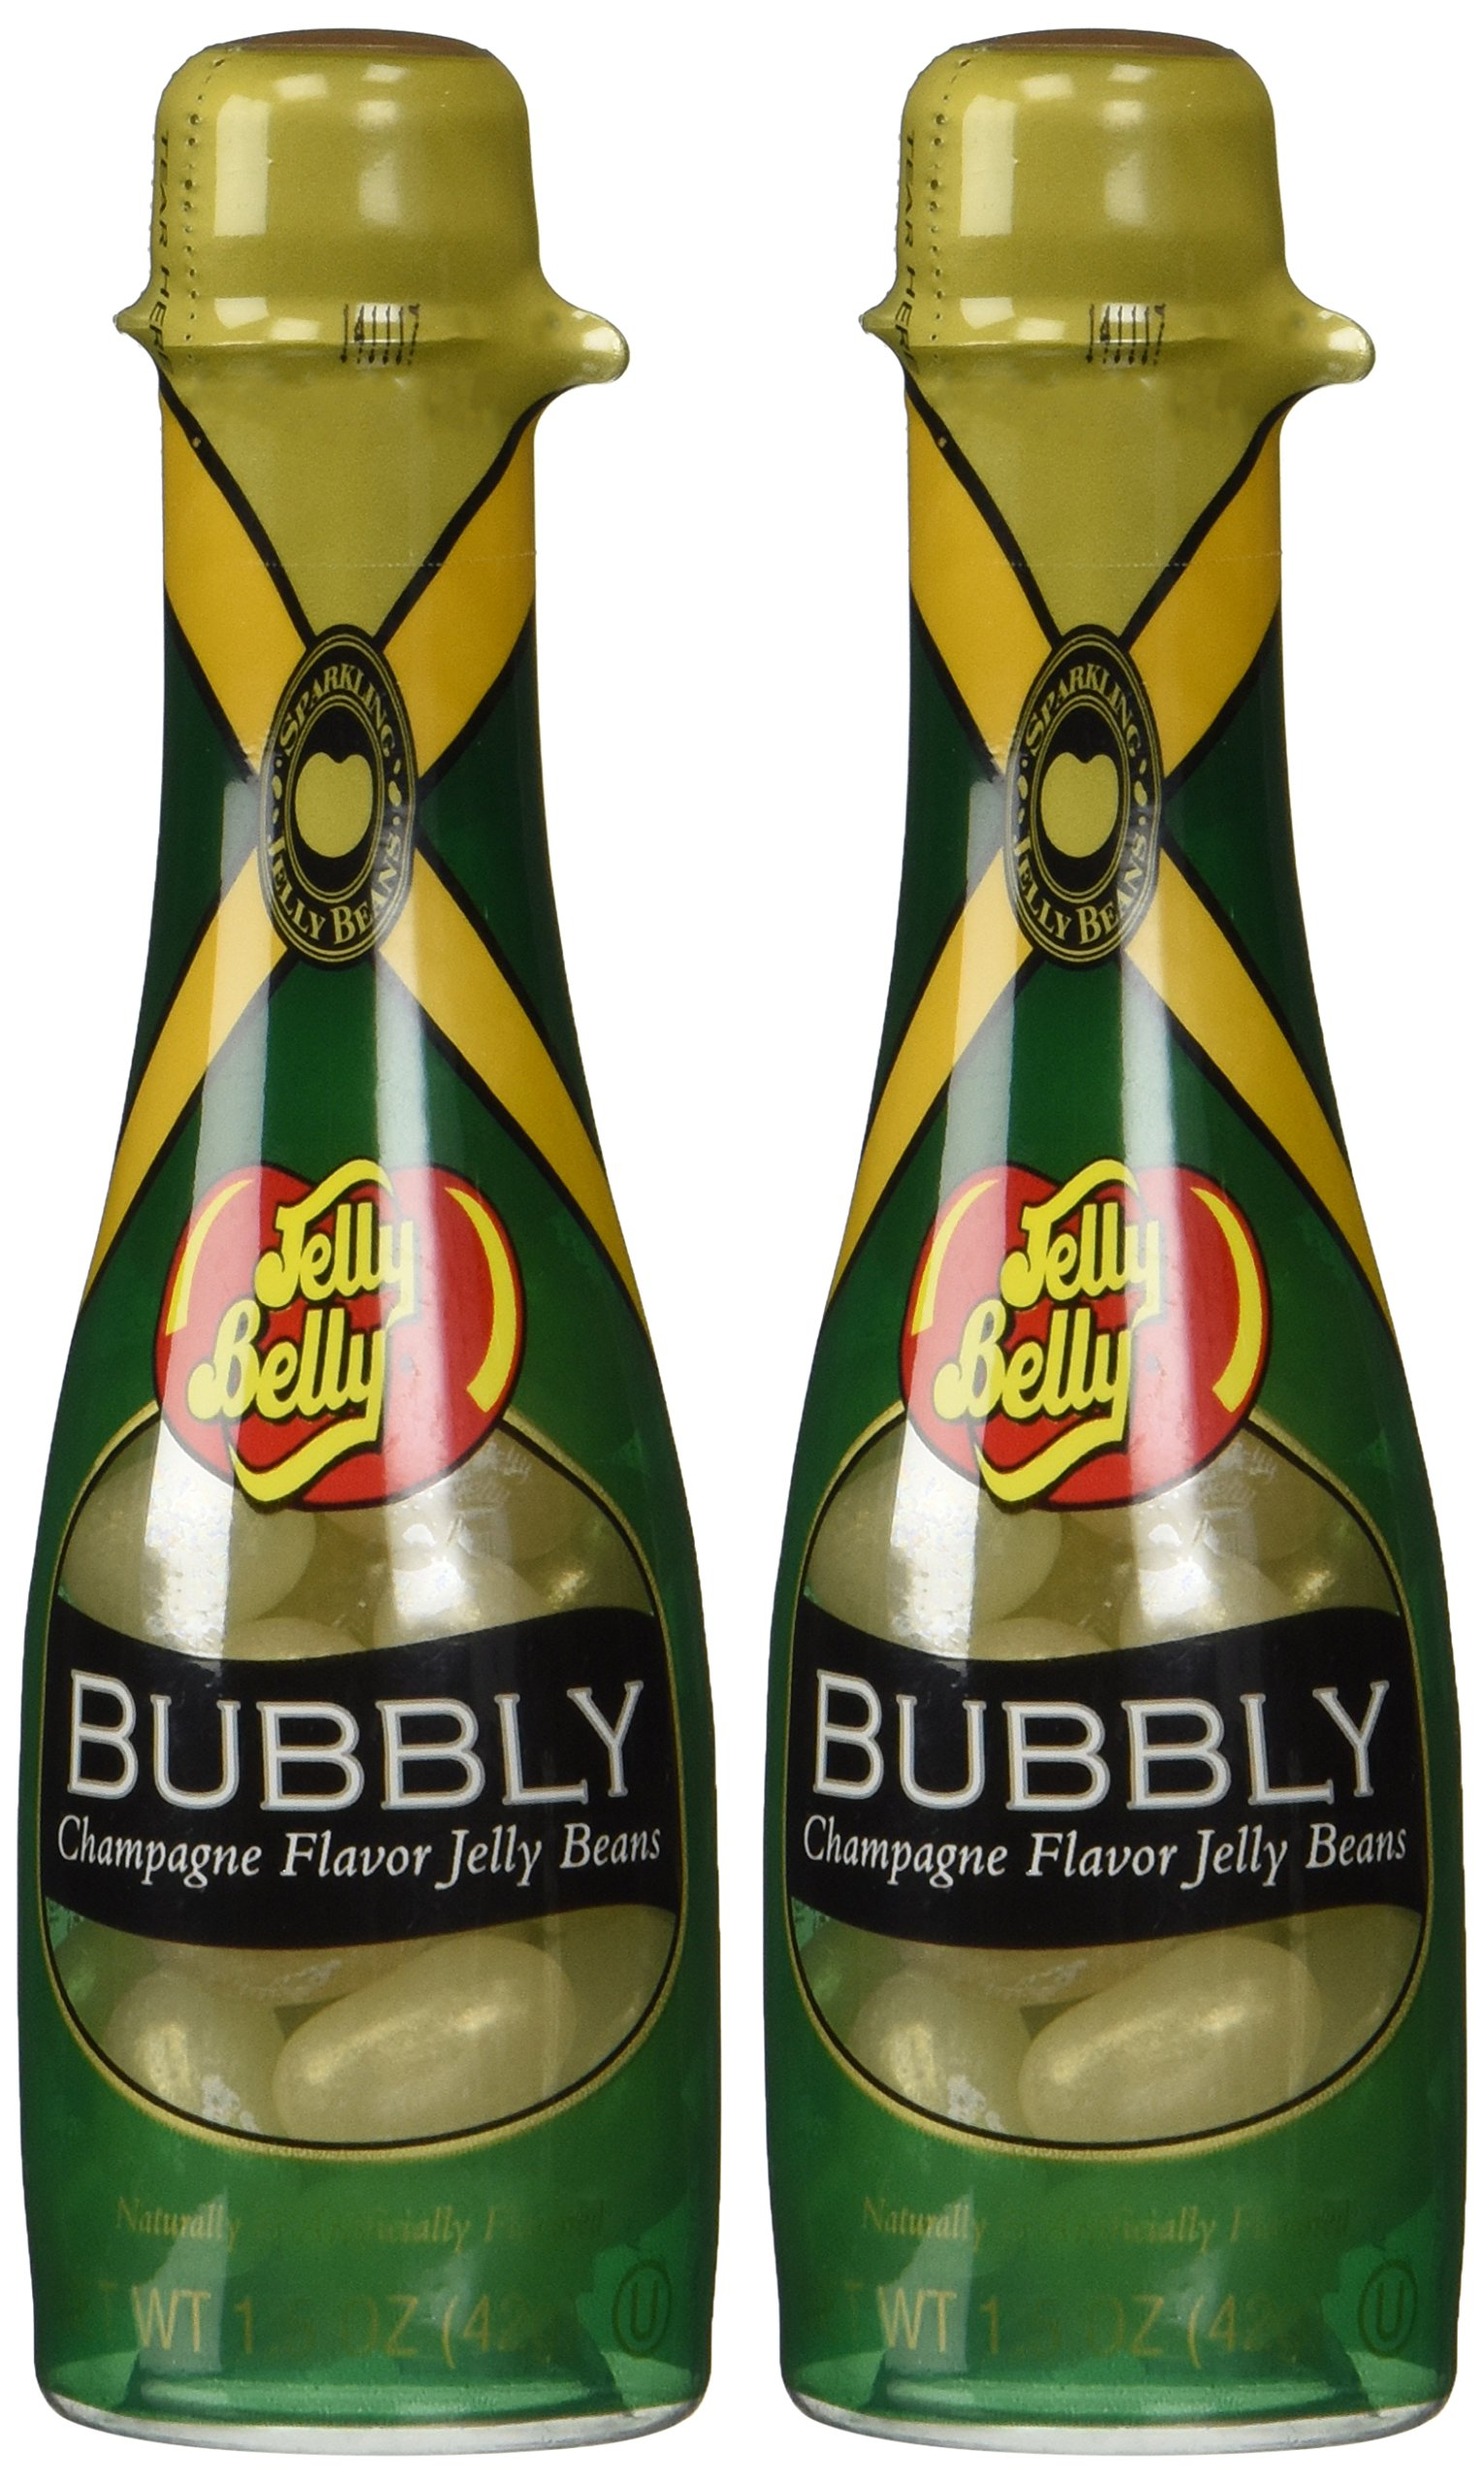 Jelly Belly Bubbly Champagne Flavored Jelly Beans Bottle (Pack of 2) by Jelly Belly